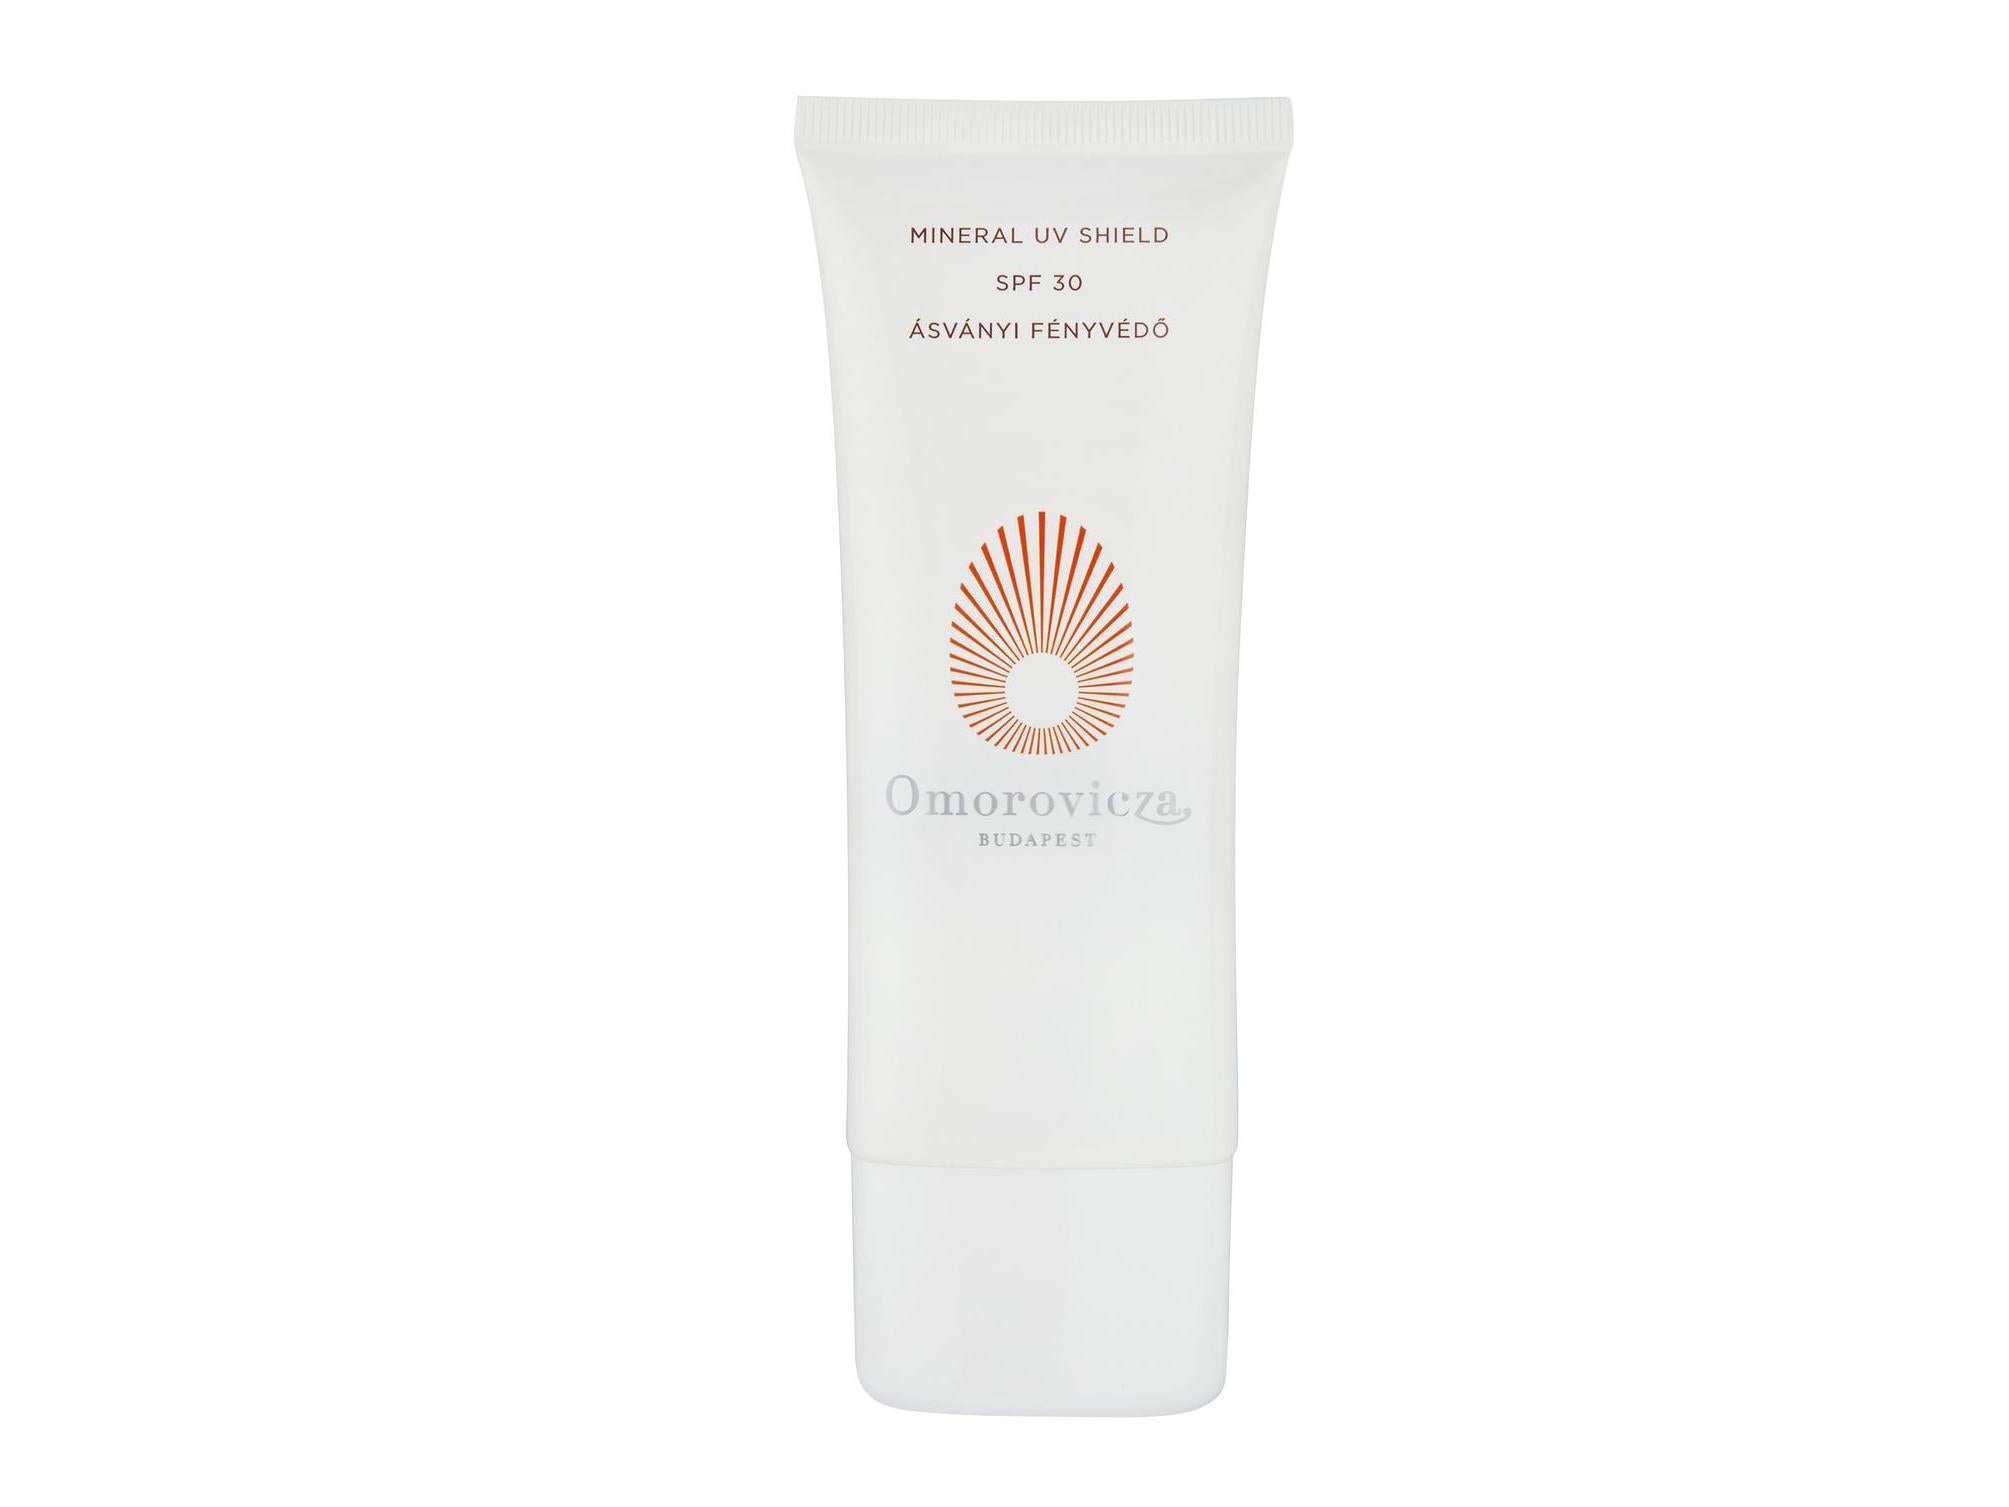 Best facial sunscreen that protects skin, works well under